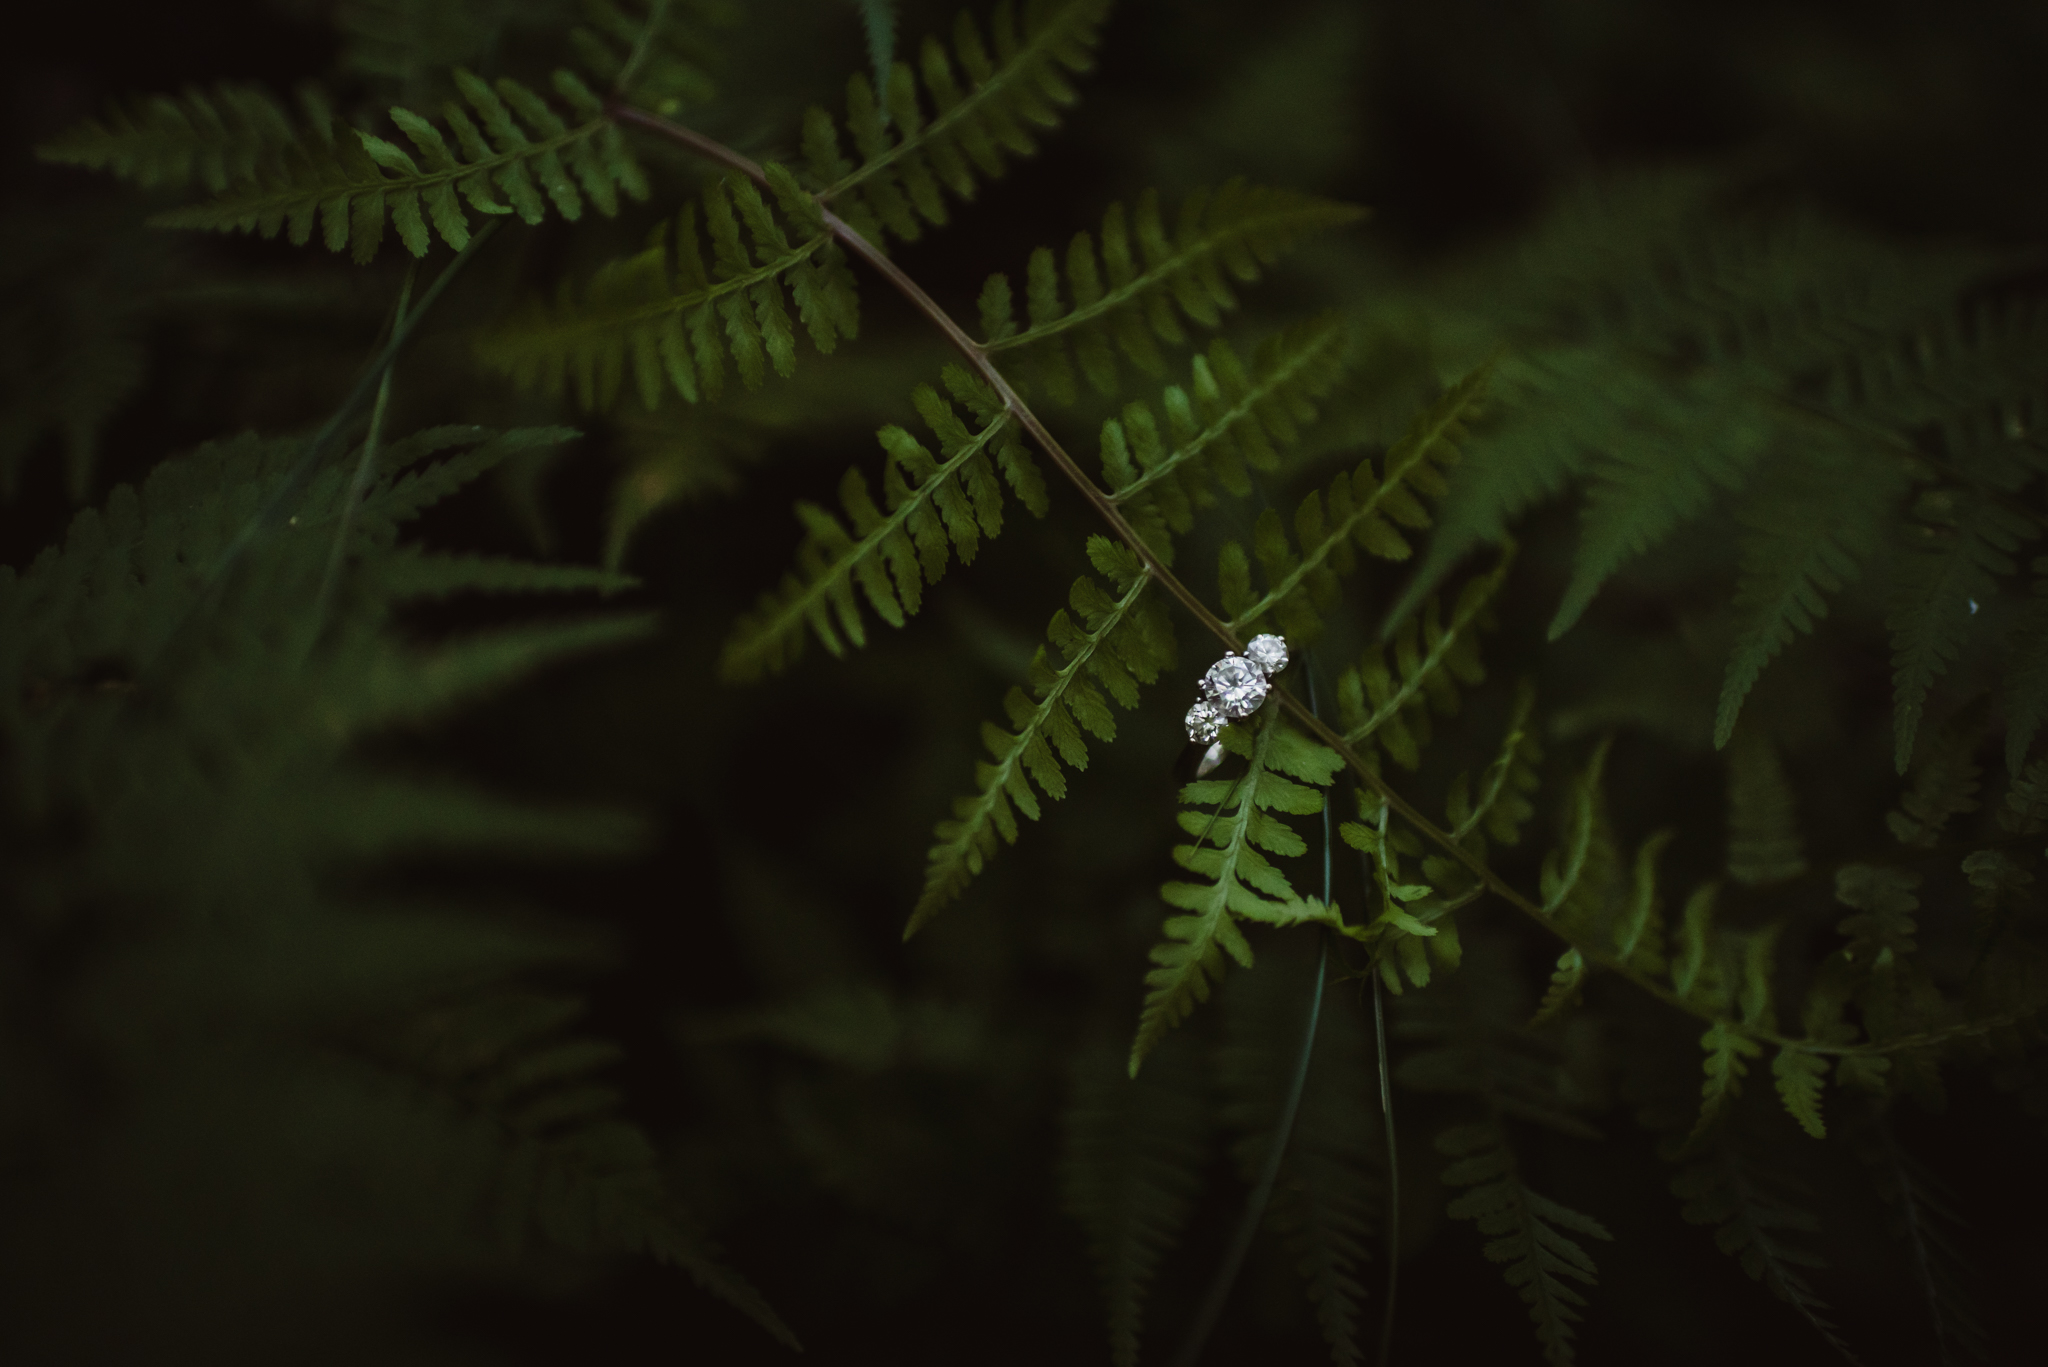 Kristin's engagement ring sparkled in the ferns during her engagement shoot in Raleigh with Rose Trail Images.